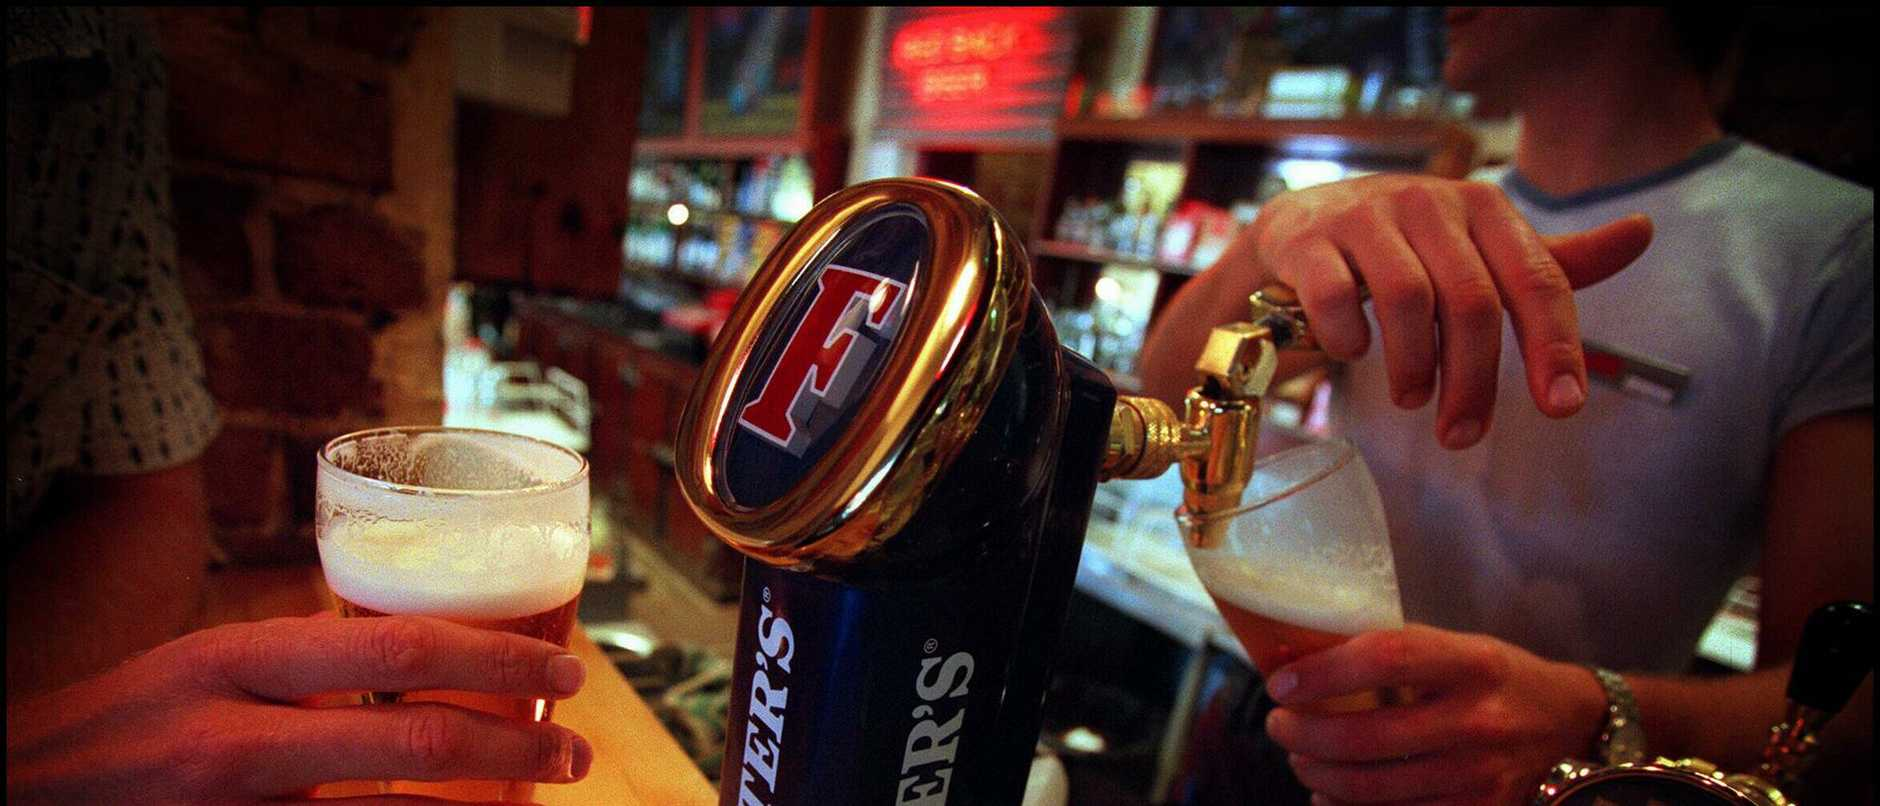 Barmaid pouring schooner of Foster's beer from tap at Perth's Queens Tavern. /Alcohol / Glass  /WA / Hotels   froth logo logos hands generic pub bar pulling glass